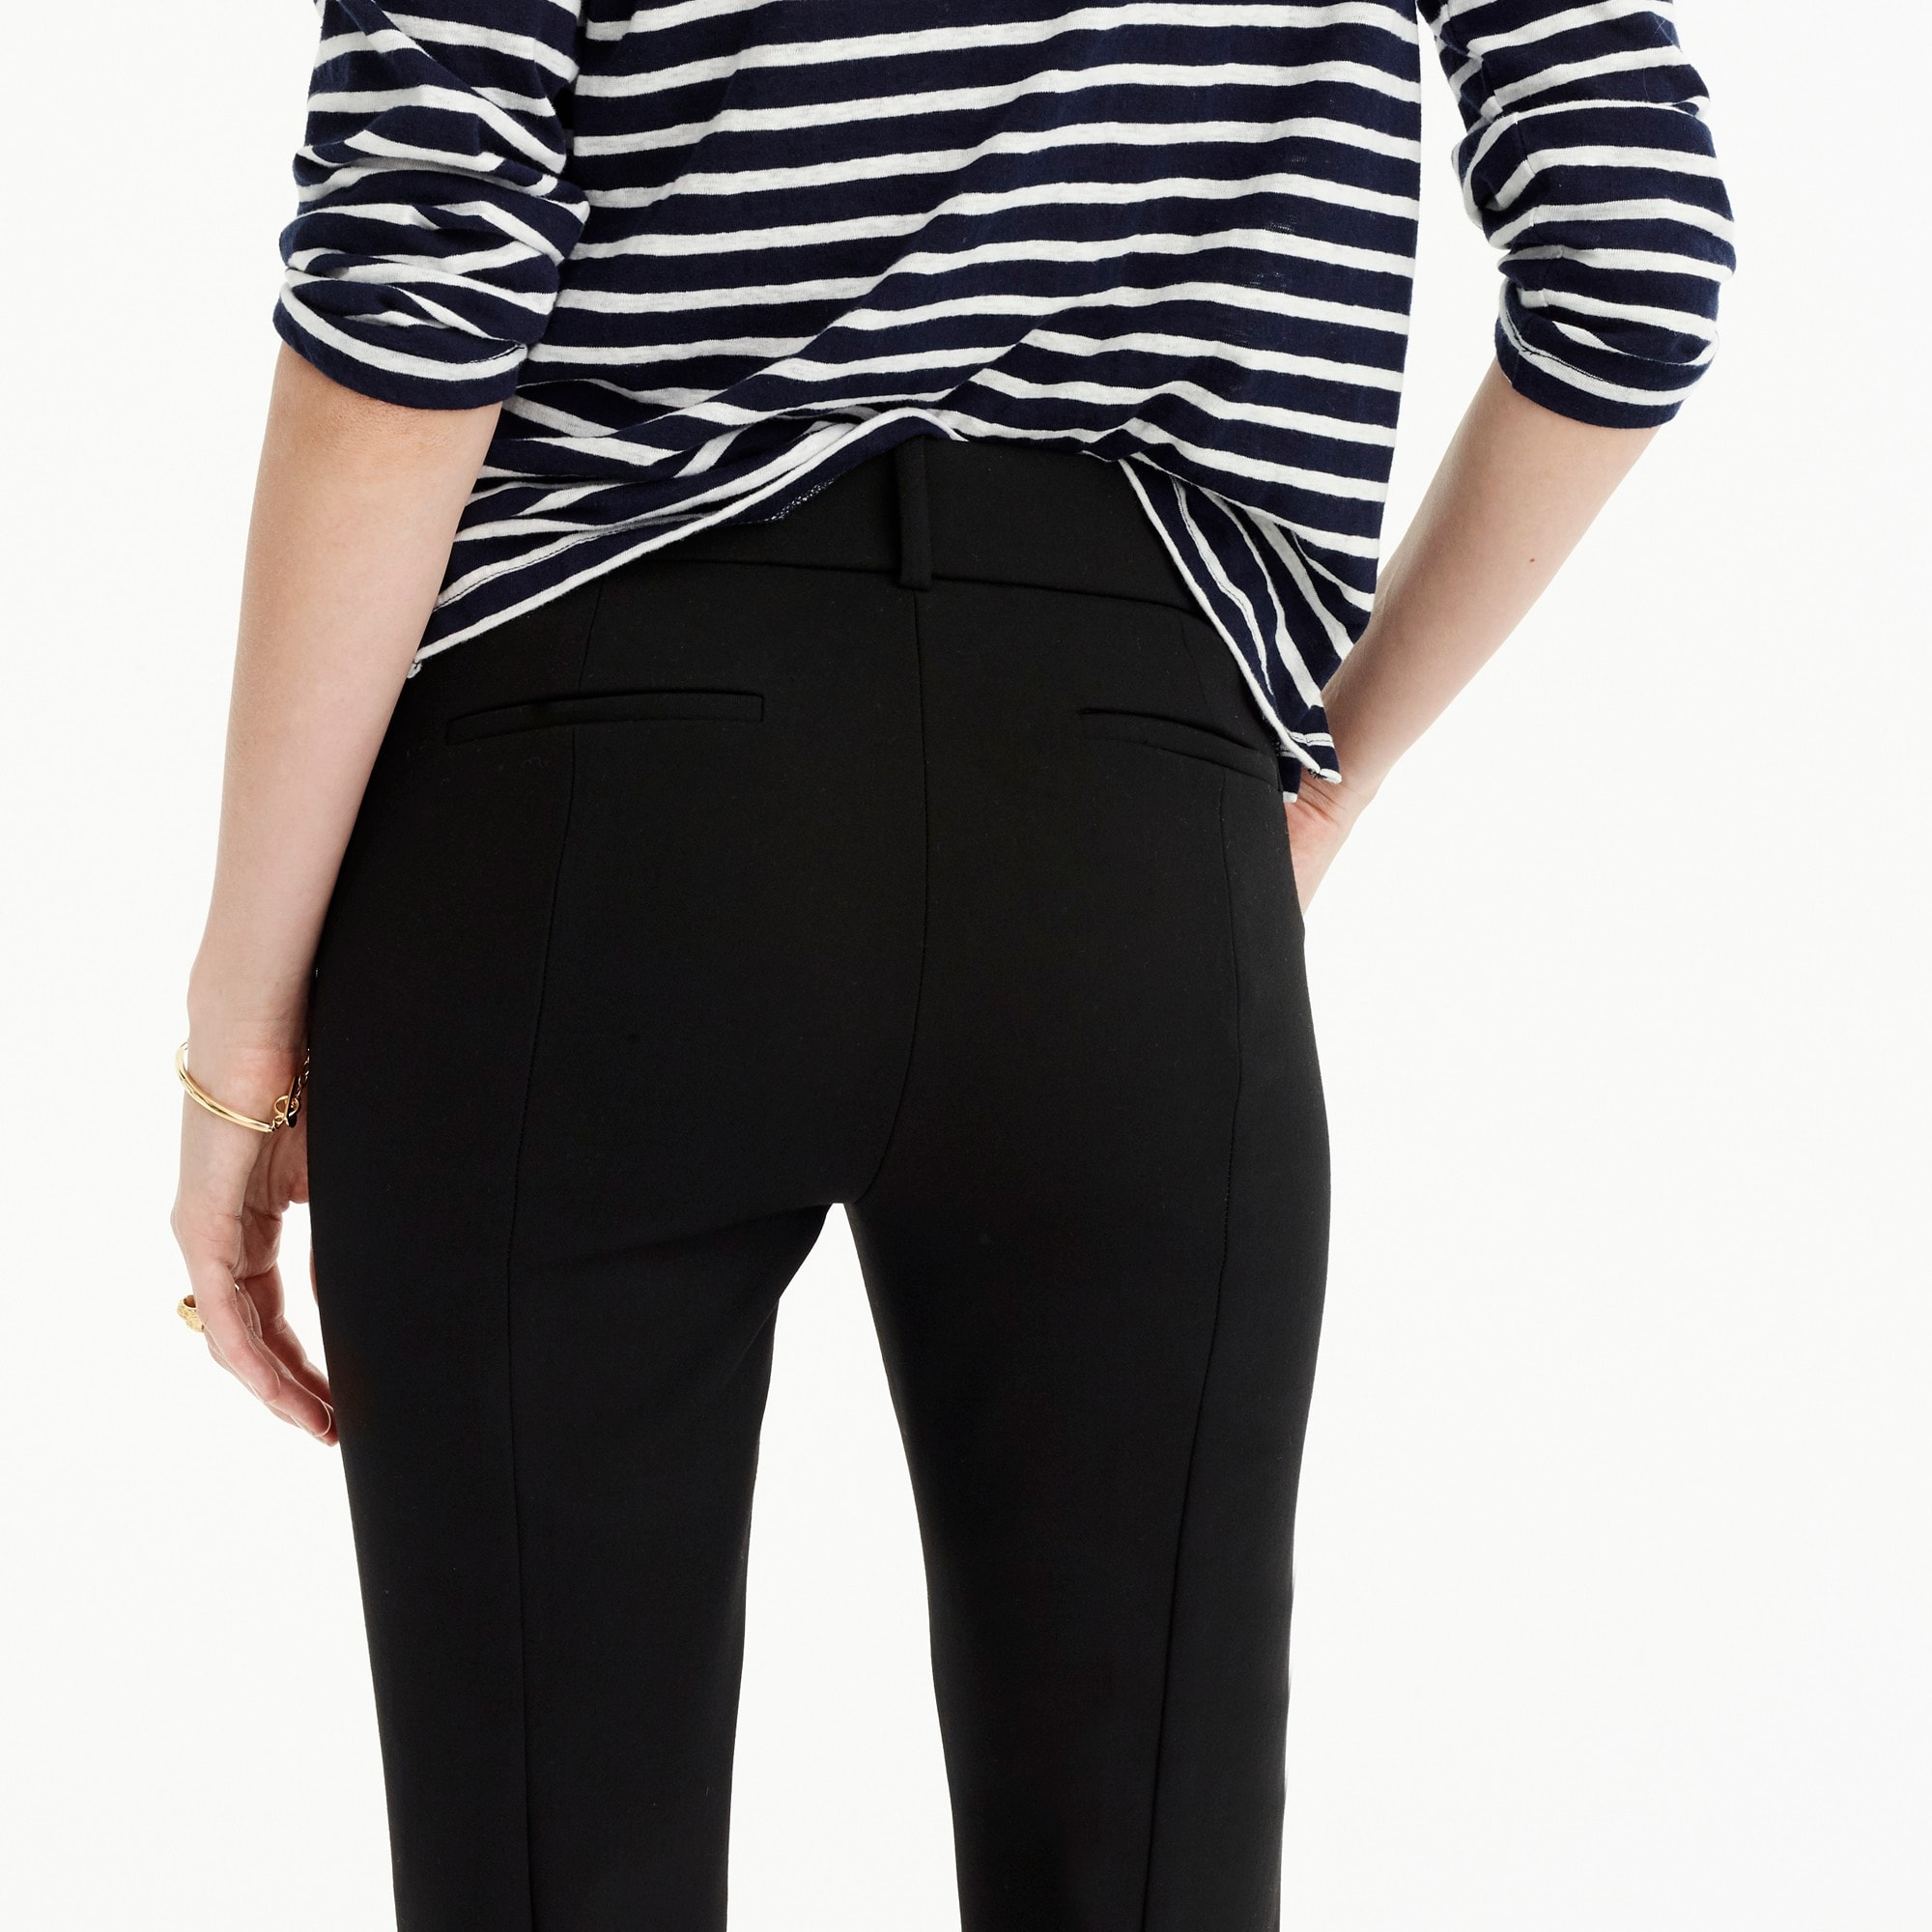 Image 5 for Cameron slim crop pant in four-season stretch